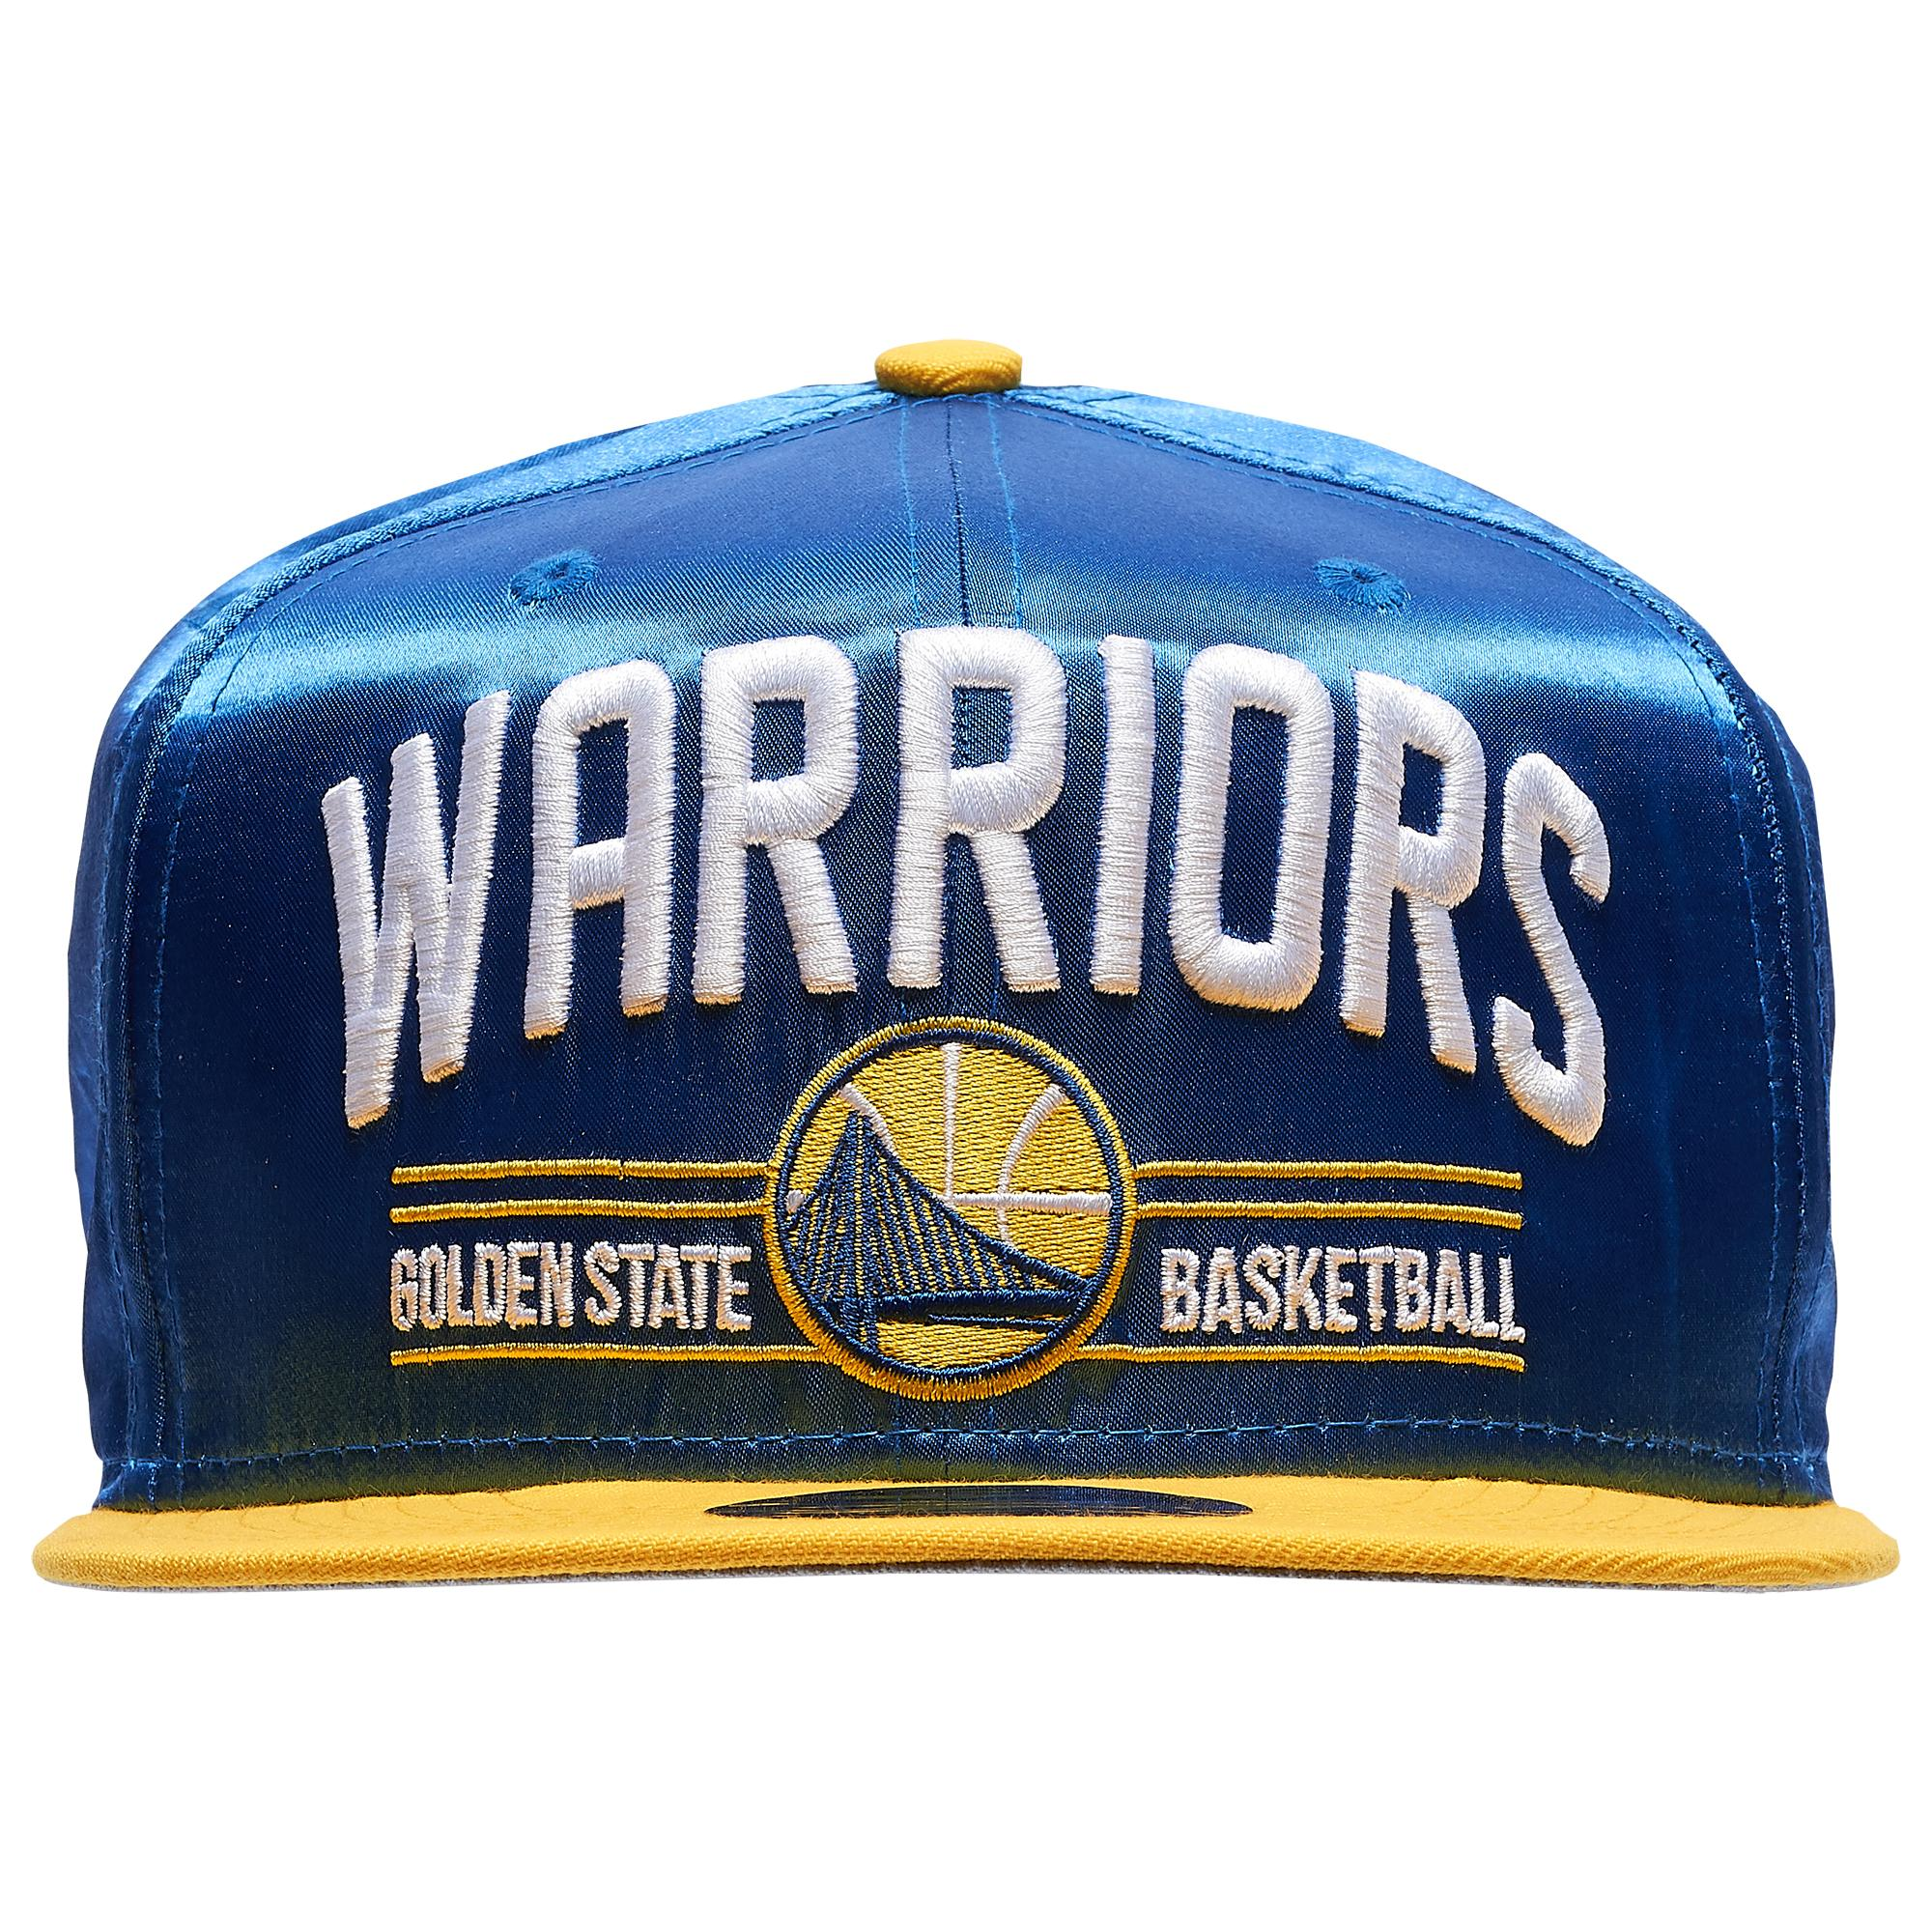 hot sale online 819ec a6175 ... Golden State Warriors 9fifty Satin Cap for Men - Lyst. View fullscreen